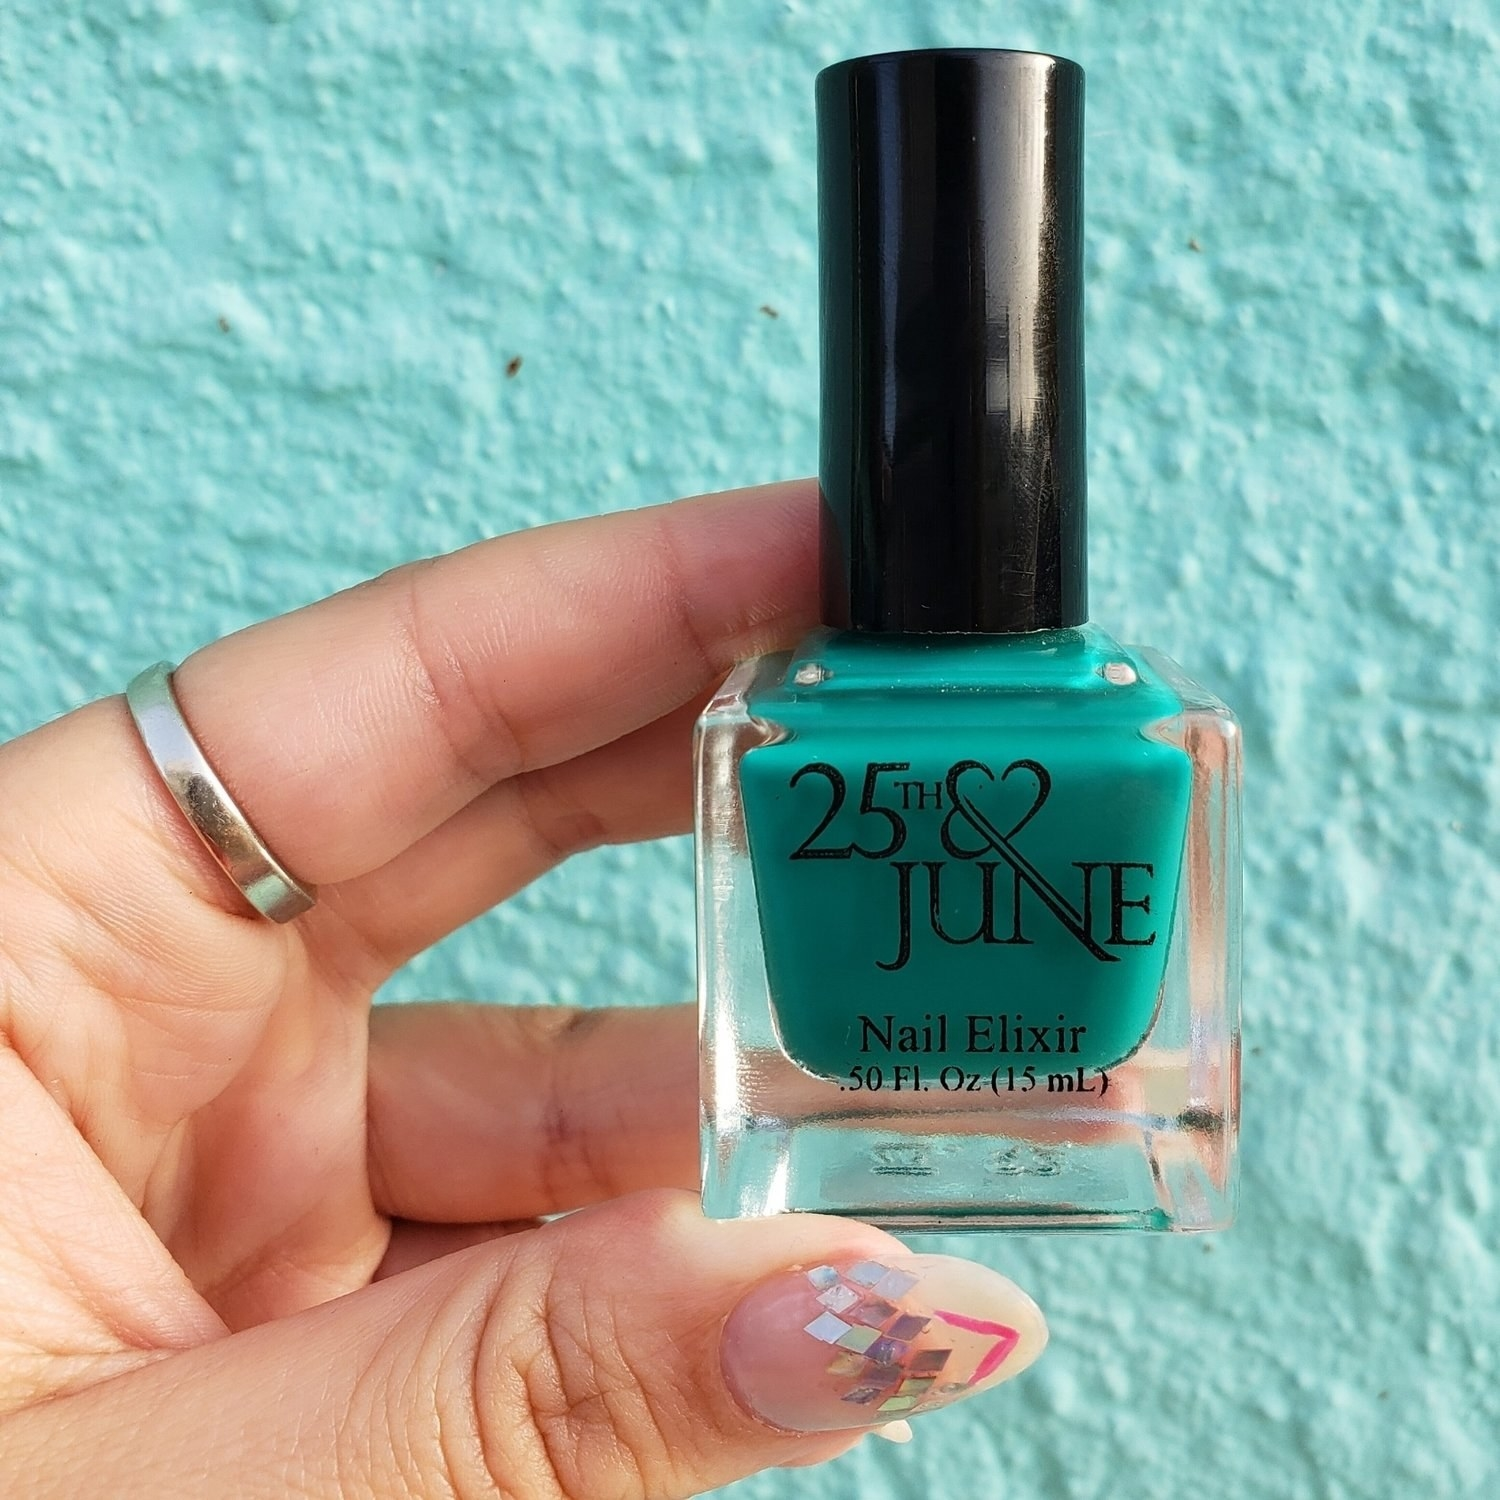 model's hand holding teal nail polish in a small glass cube bottle